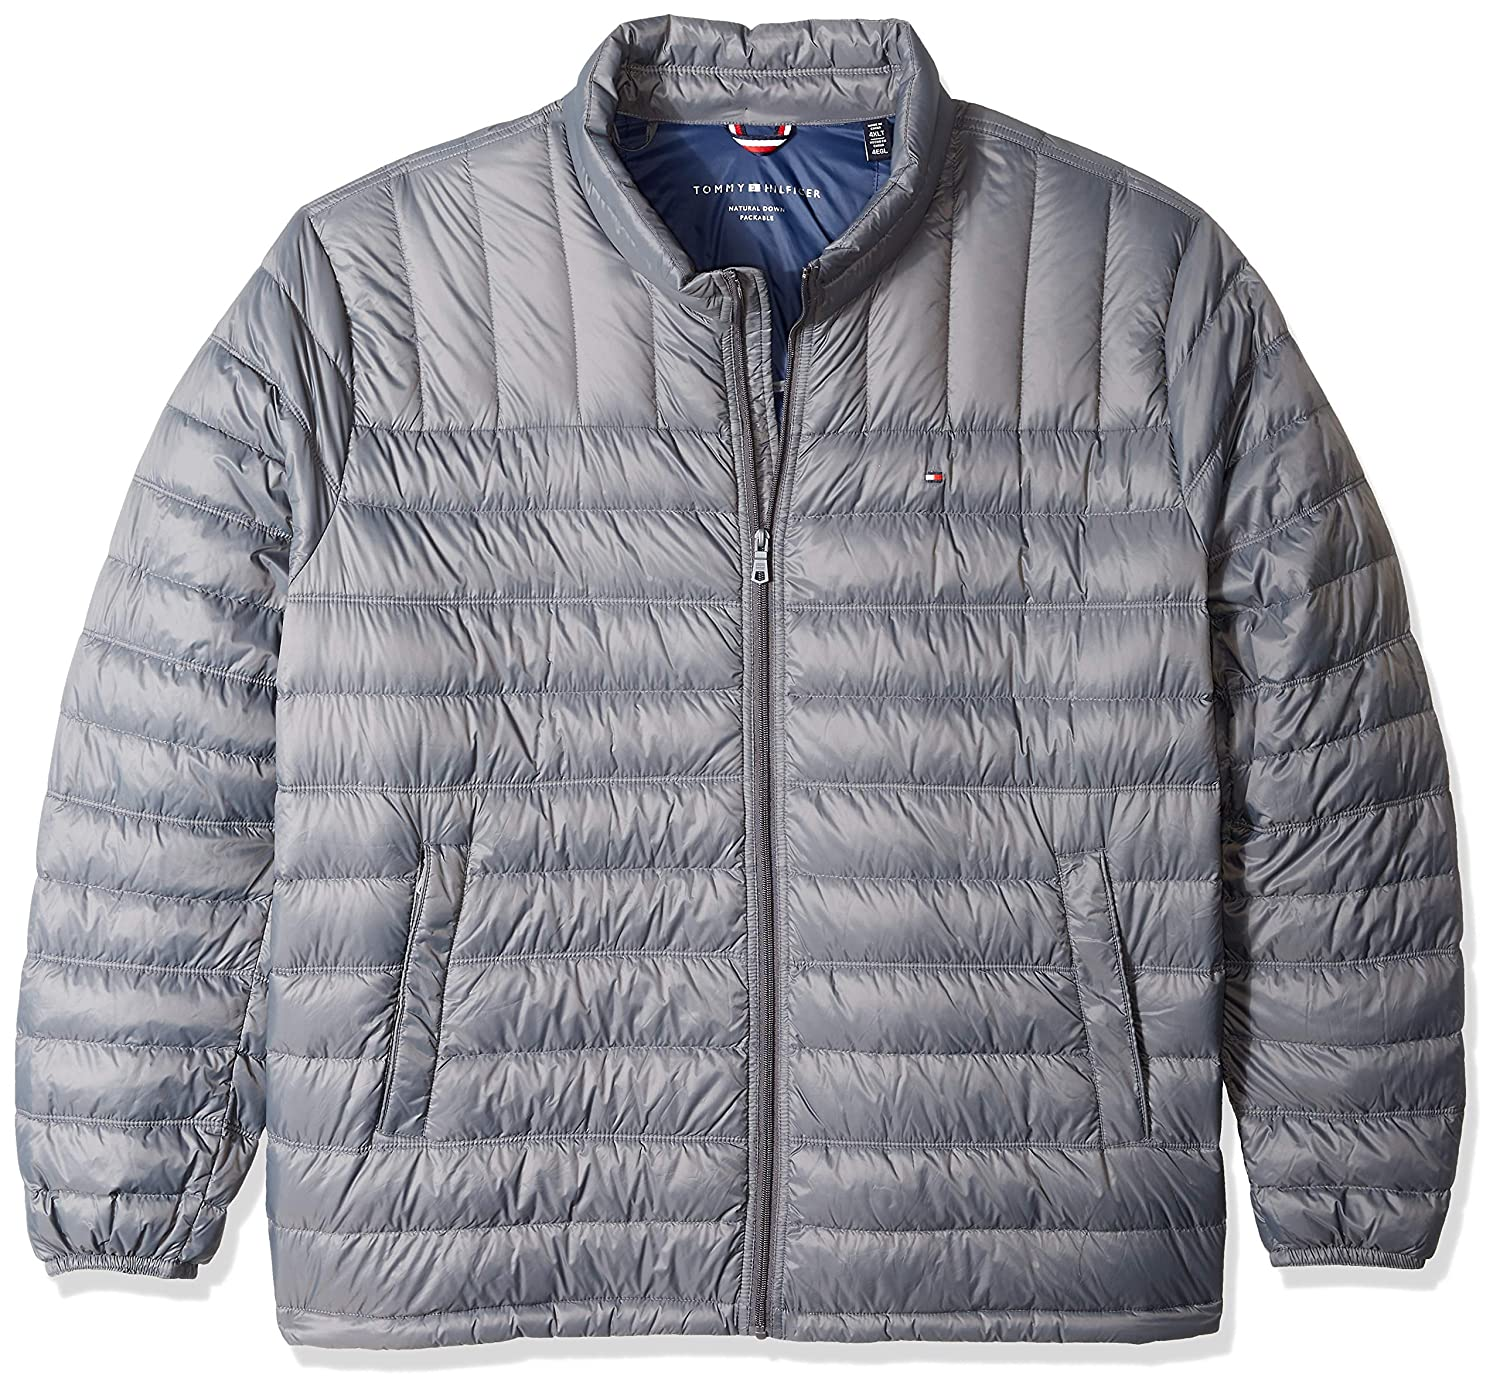 43e13631 Tommy Hilfiger Men's Packable Down Jacket (Regular and Big & Tall Sizes) at  Amazon Men's Clothing store: